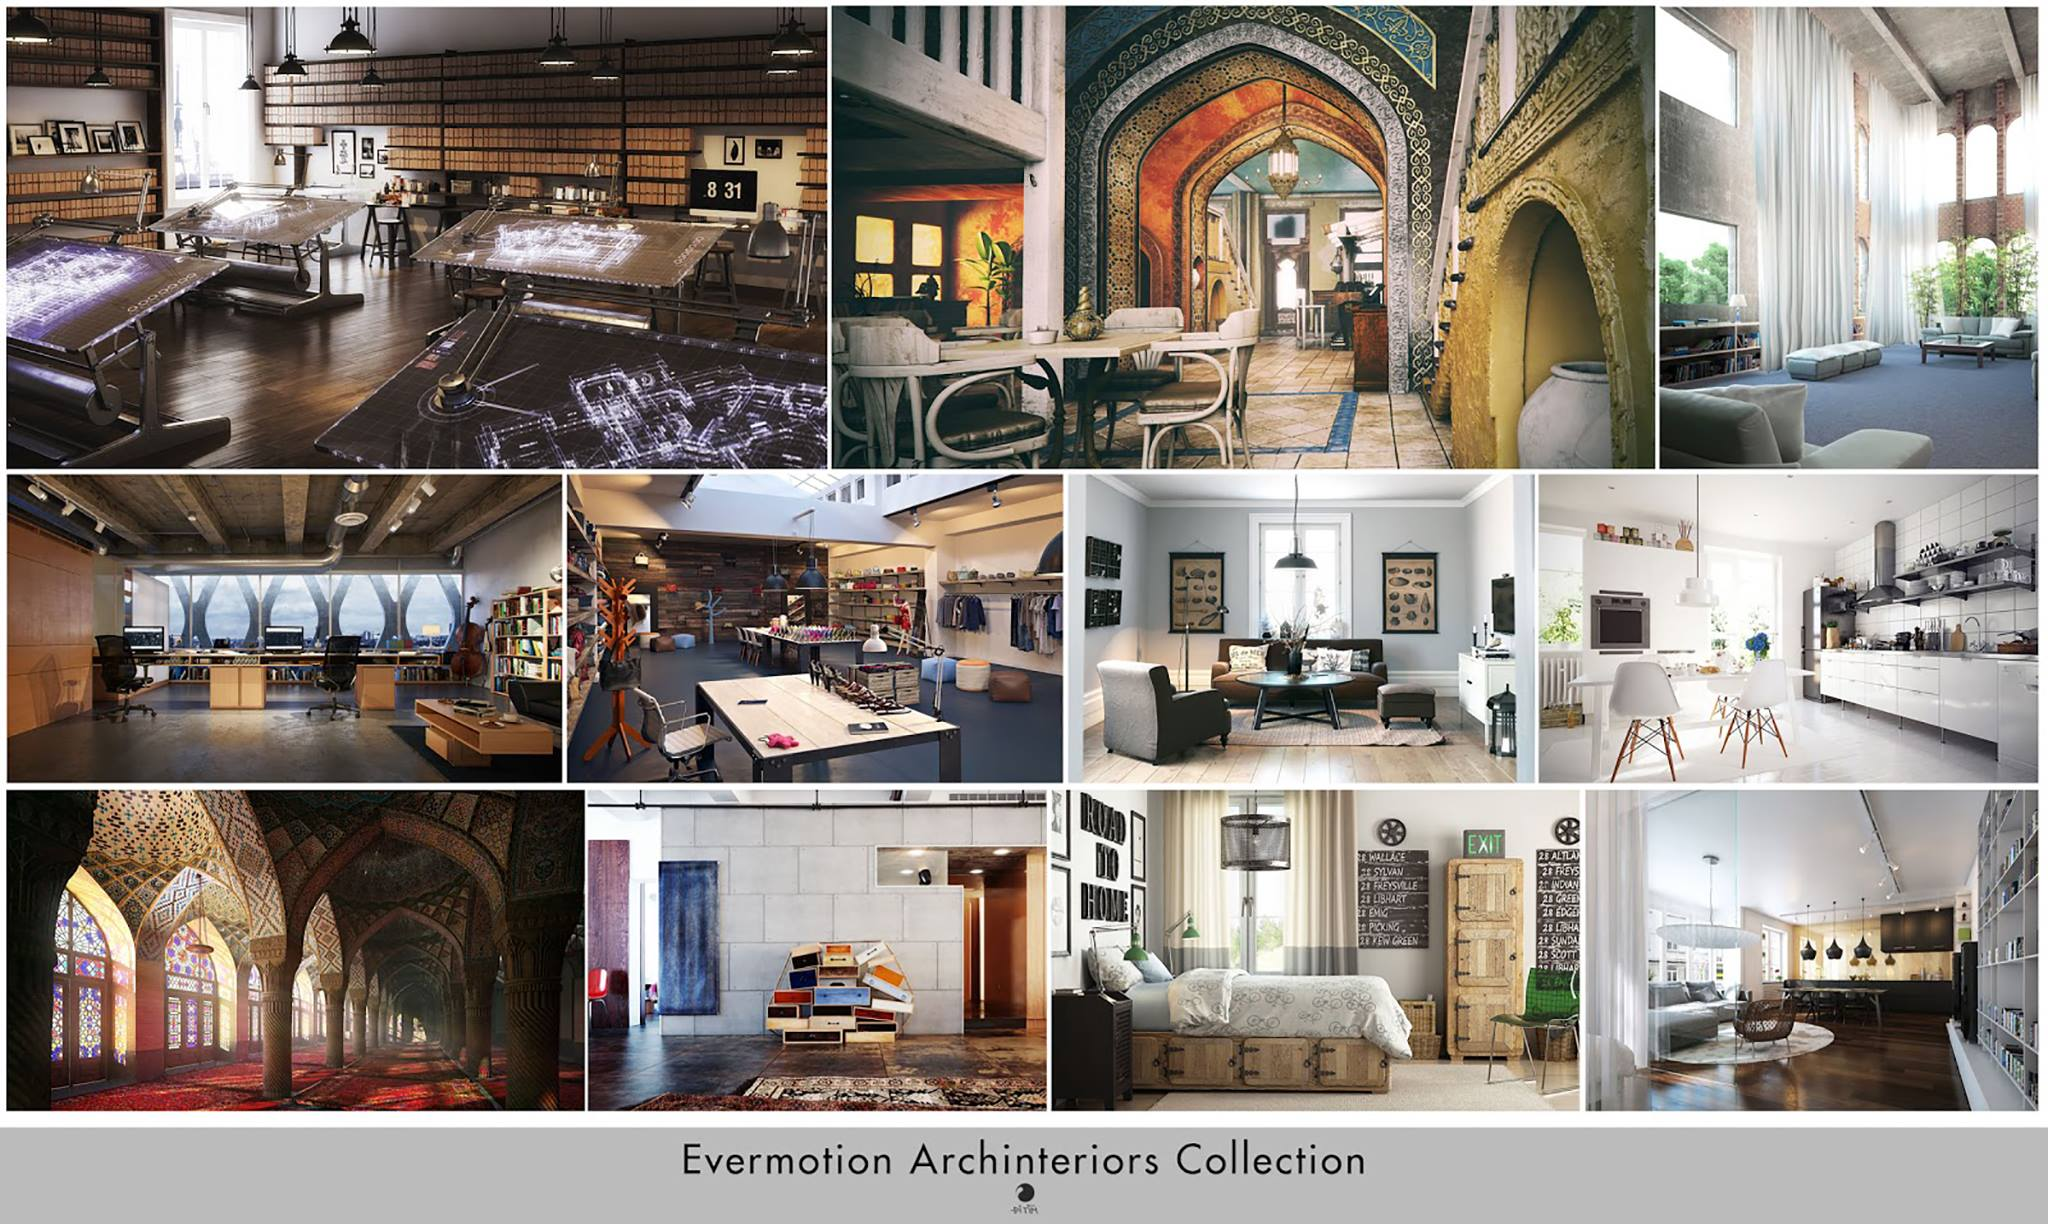 [ 3dsmax ] Evermotion Archinteriors Collection